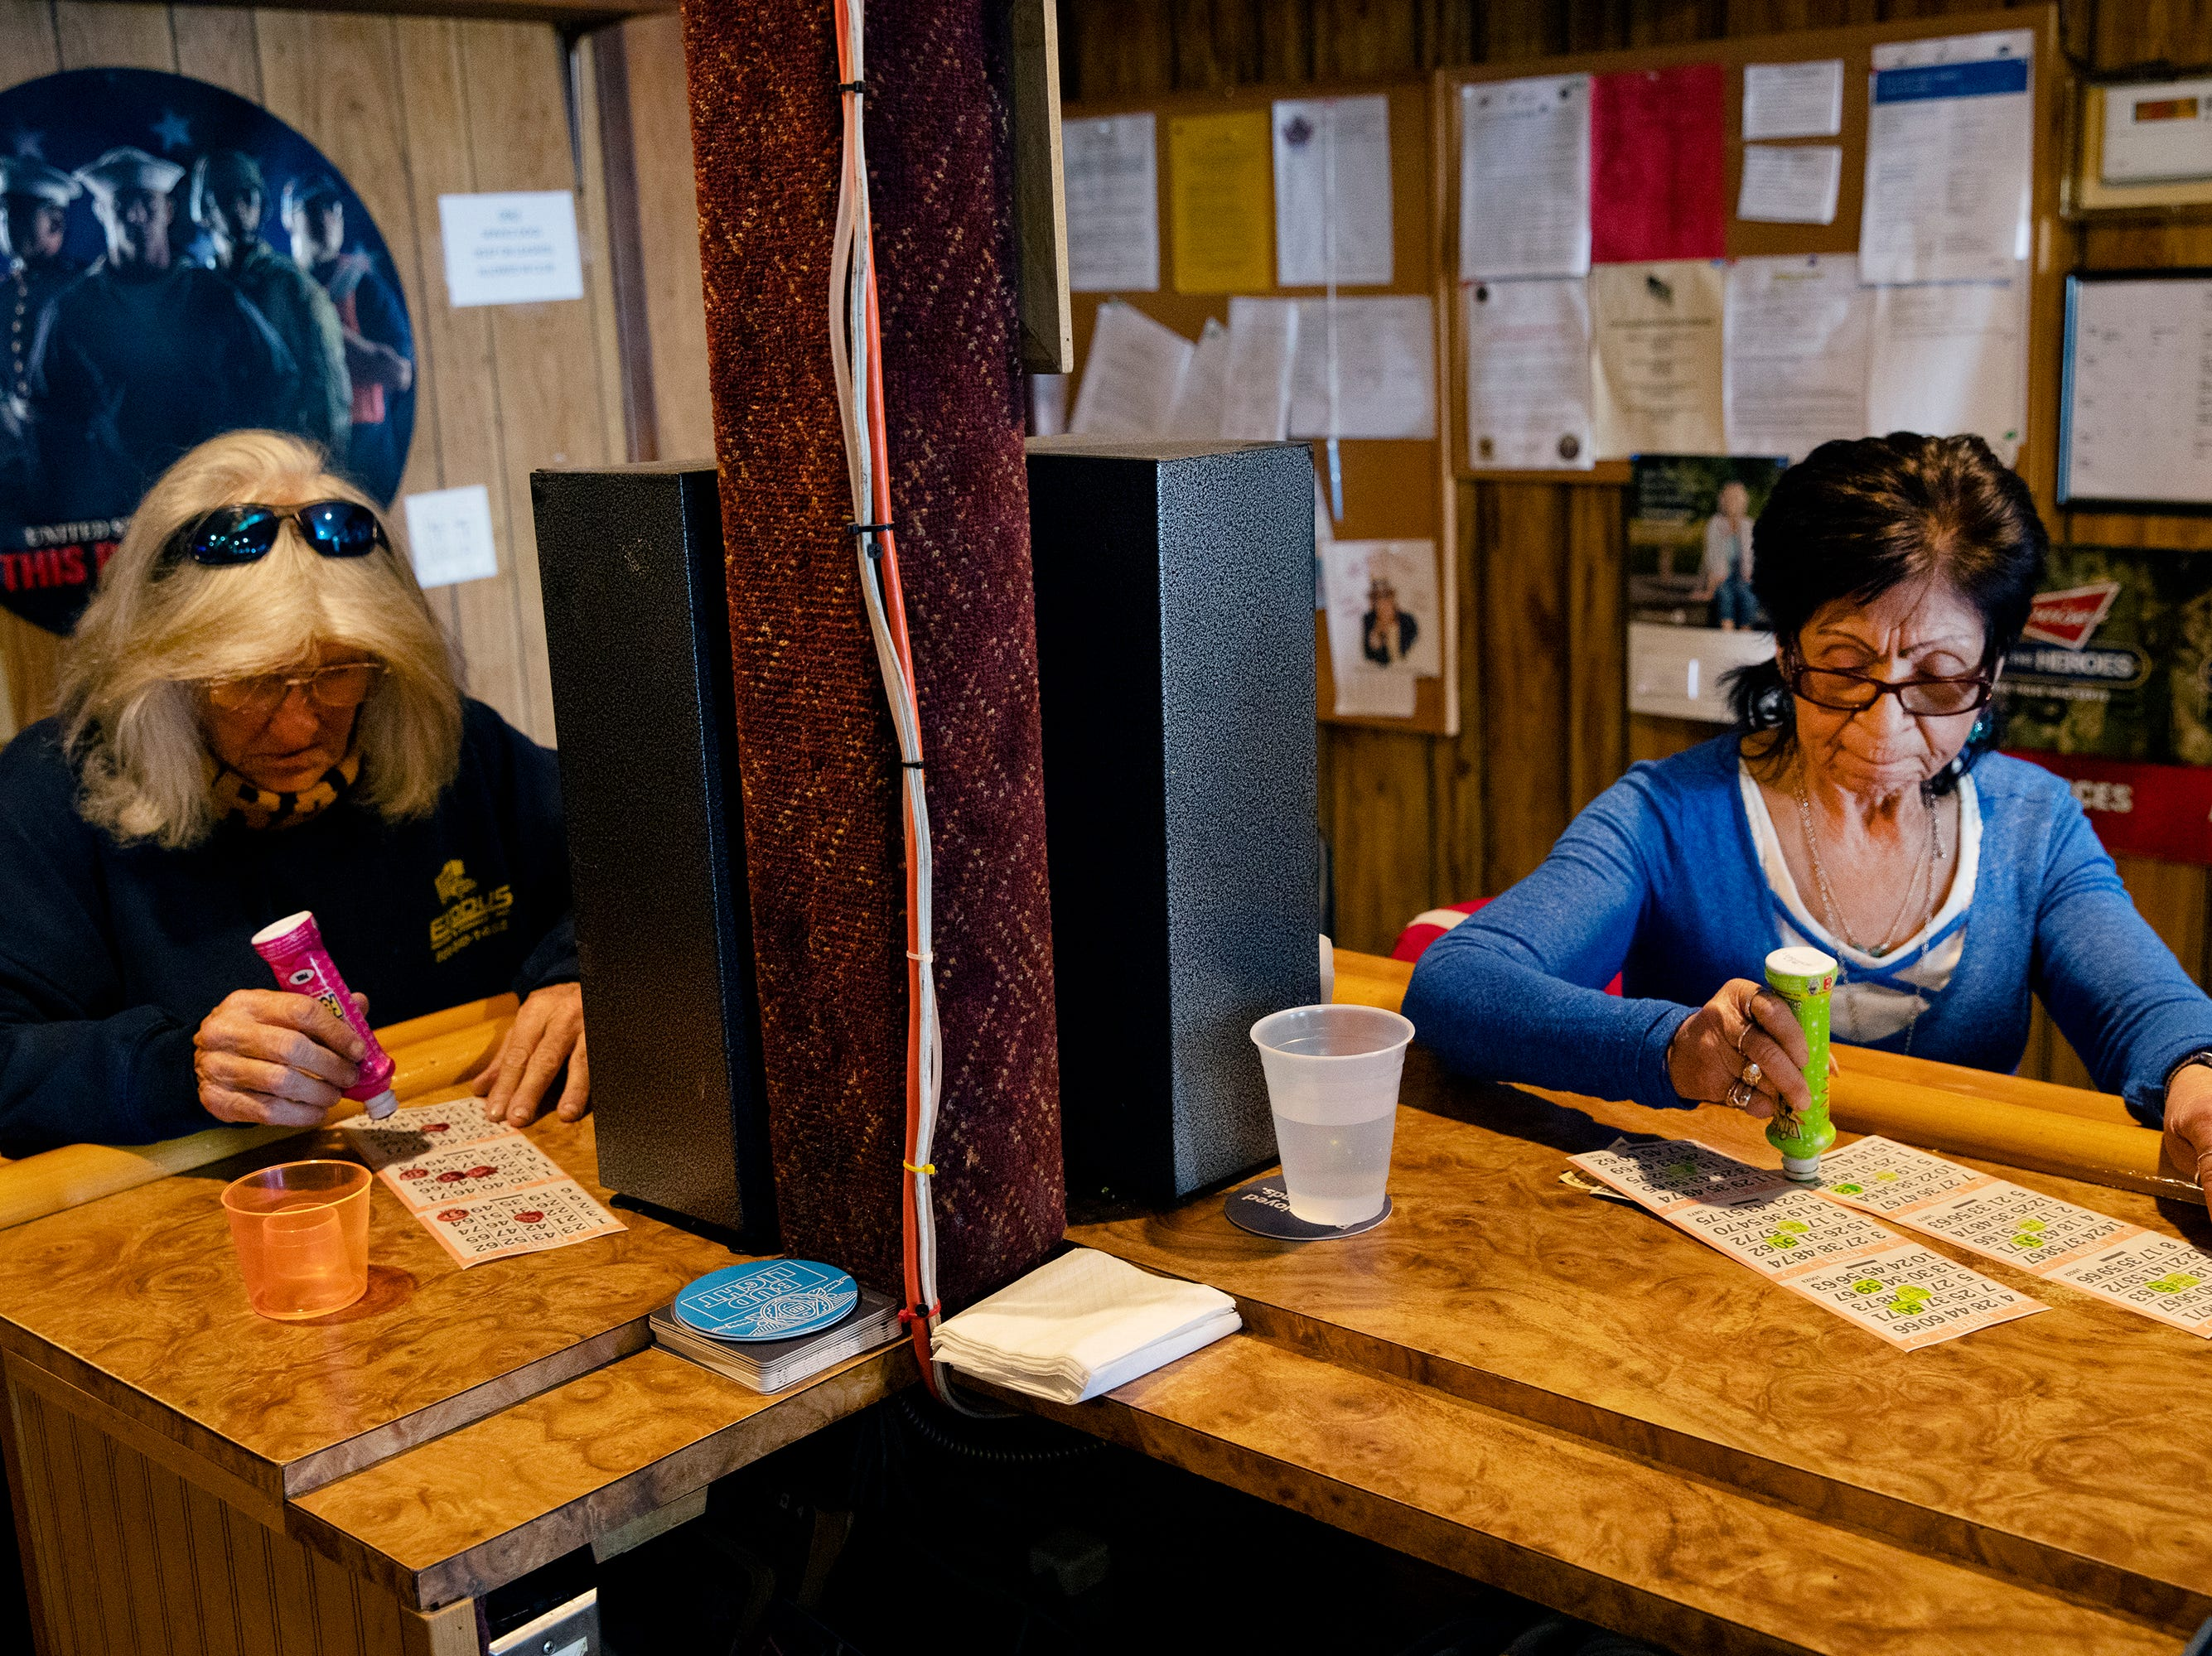 Joy Waters, left, and Virginia Serrano daub their cards during the Sunday afternoon bingo game at the George Beach Post No. 4 of the American Legion on March 10. Waters has been a member for 25 years and Serrano for 13 years.